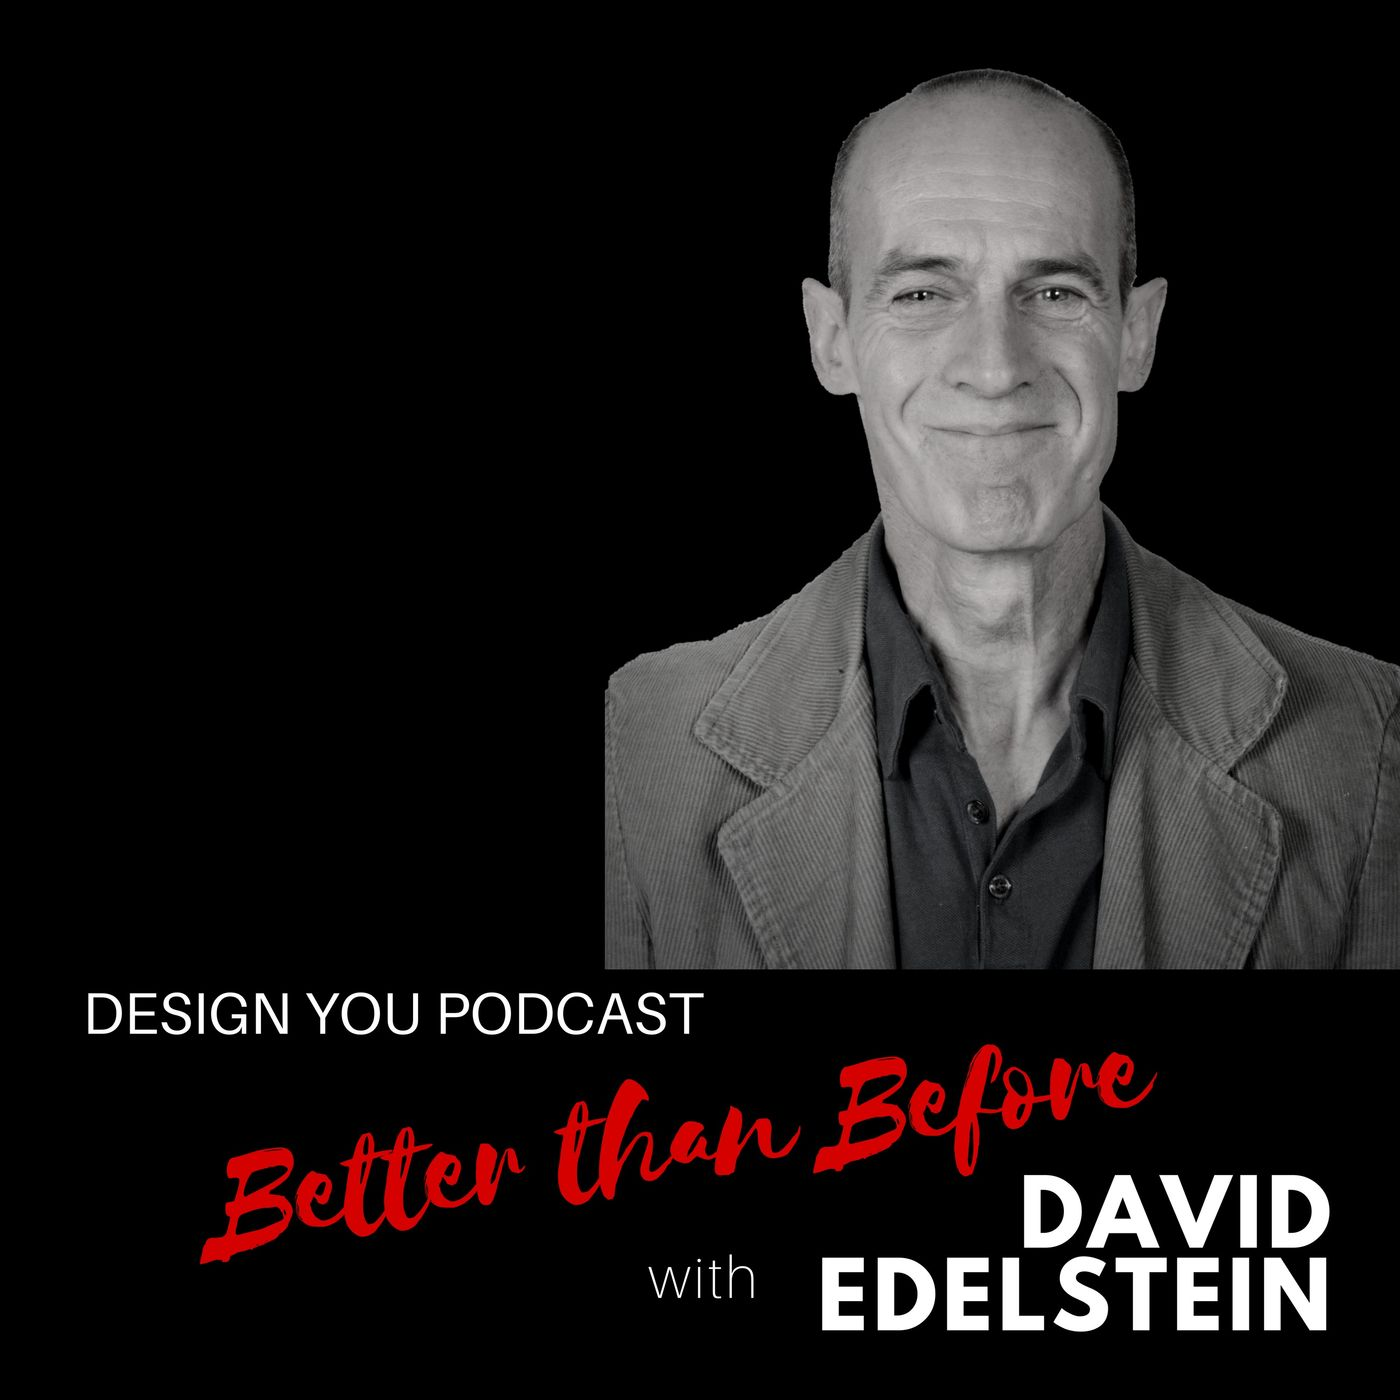 EP 040 – Better than Before with Dave Edelstein